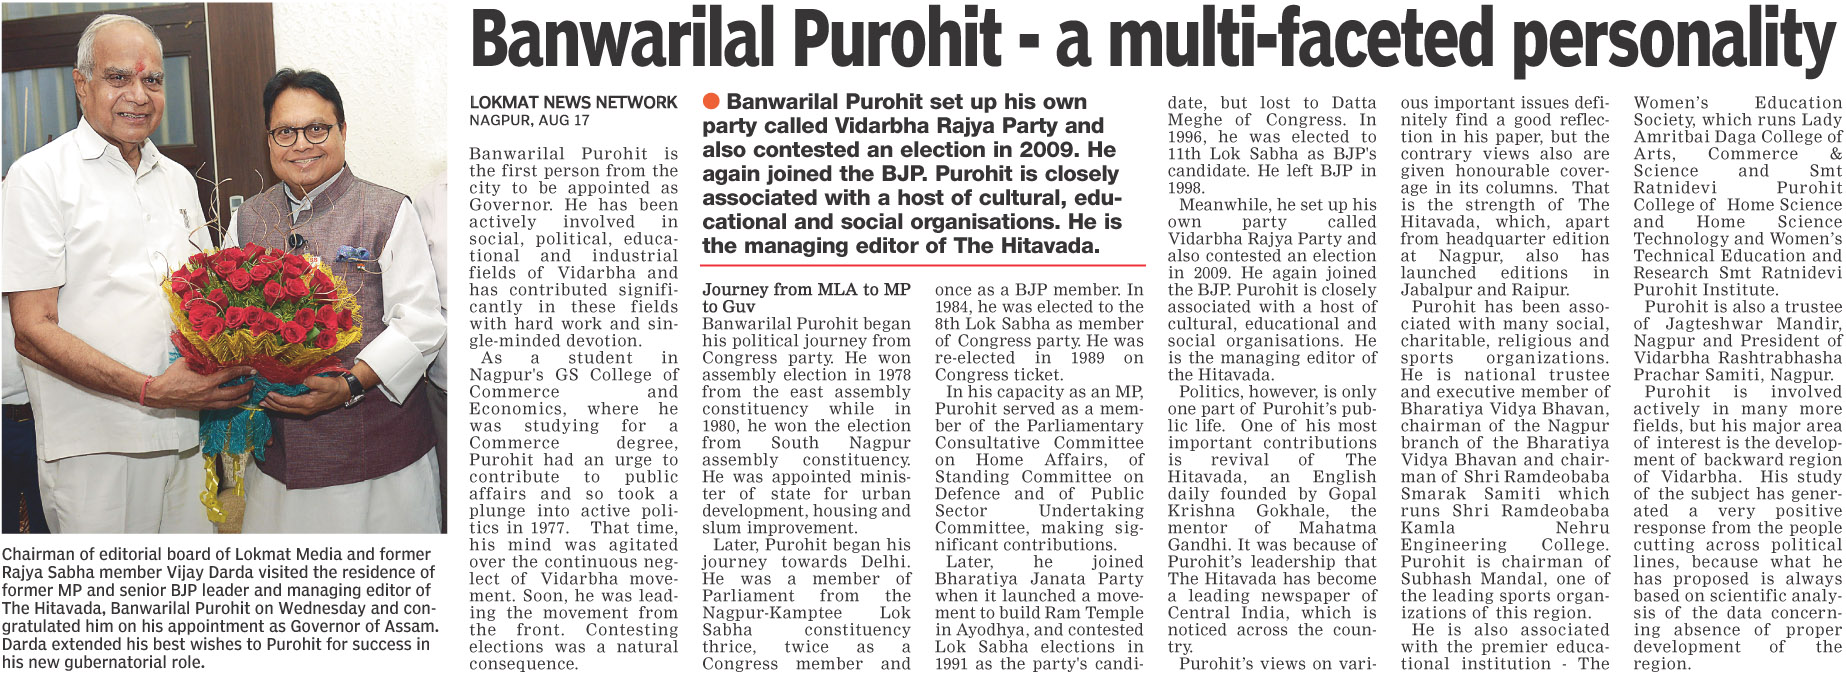 Banwarilal Purohit - a multi-faceted personality